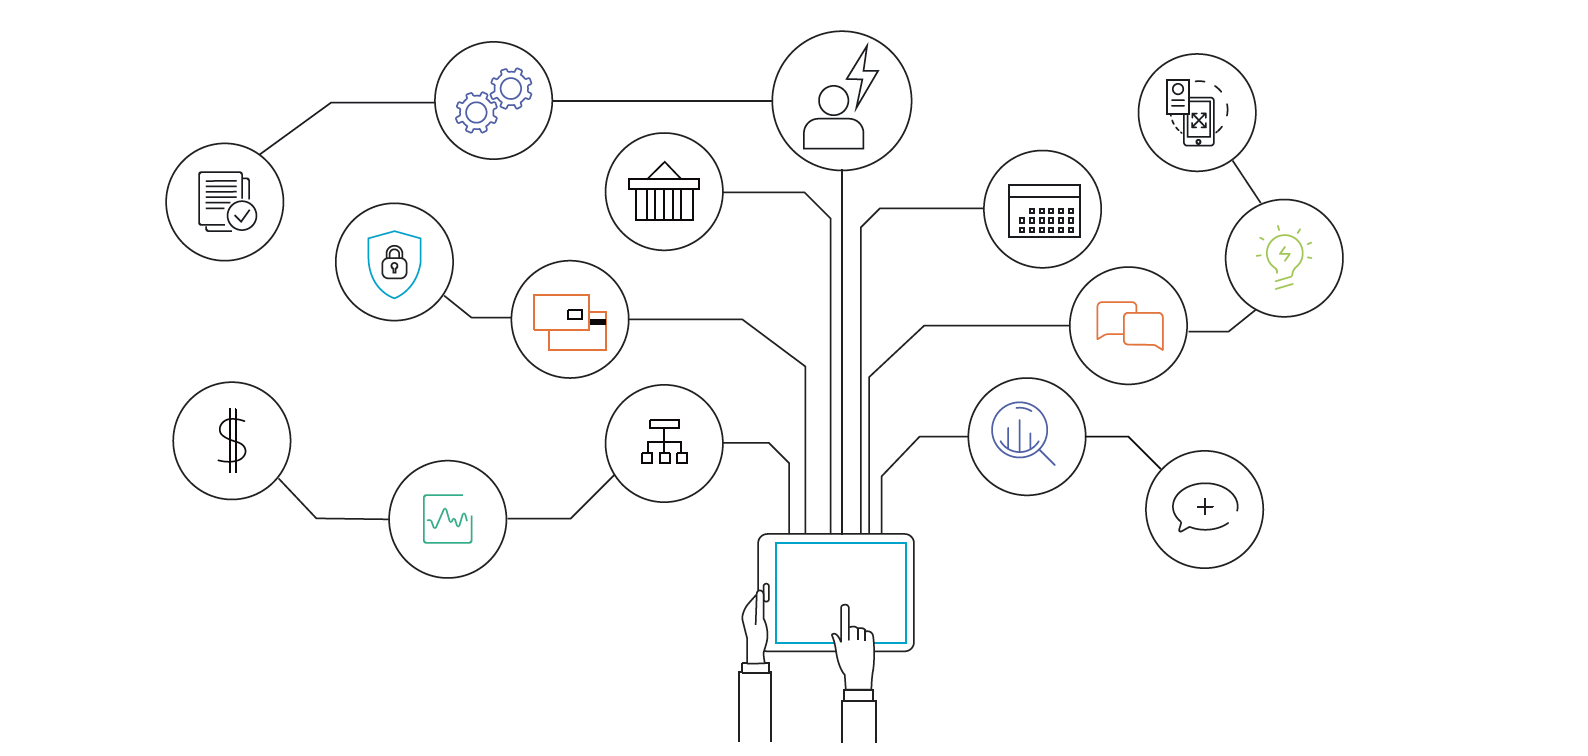 Financial Services 2019 Trends – Embracing Digital